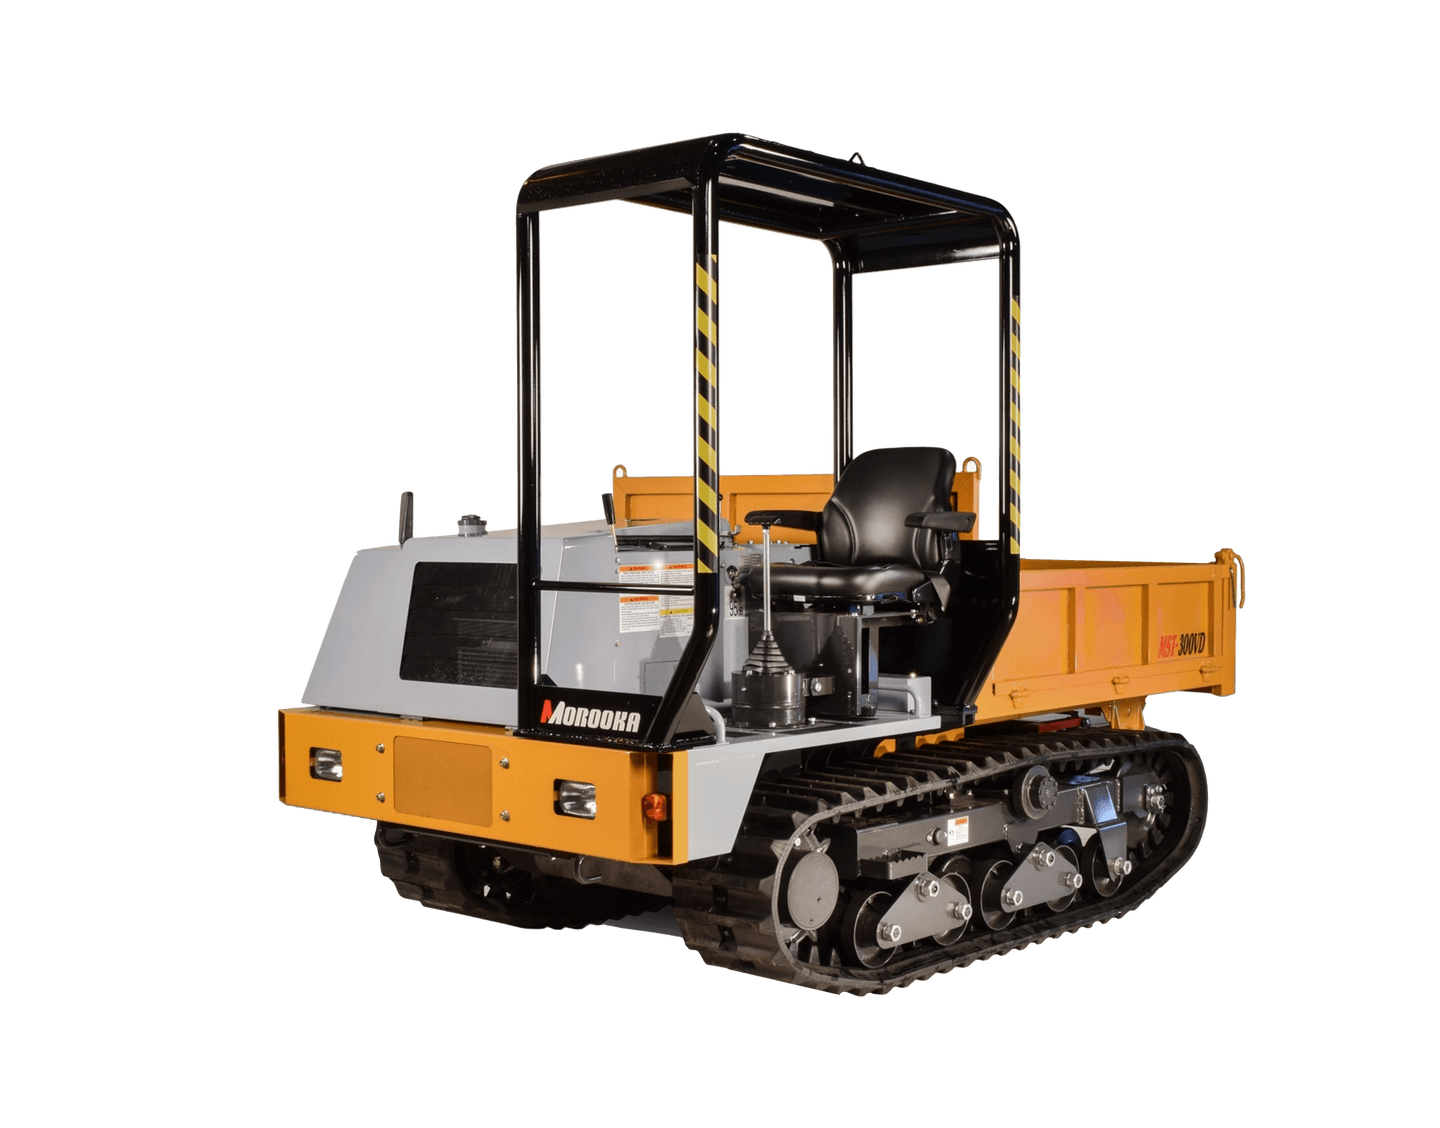 morooka-tracked-dumpers-for-sale-or-rental